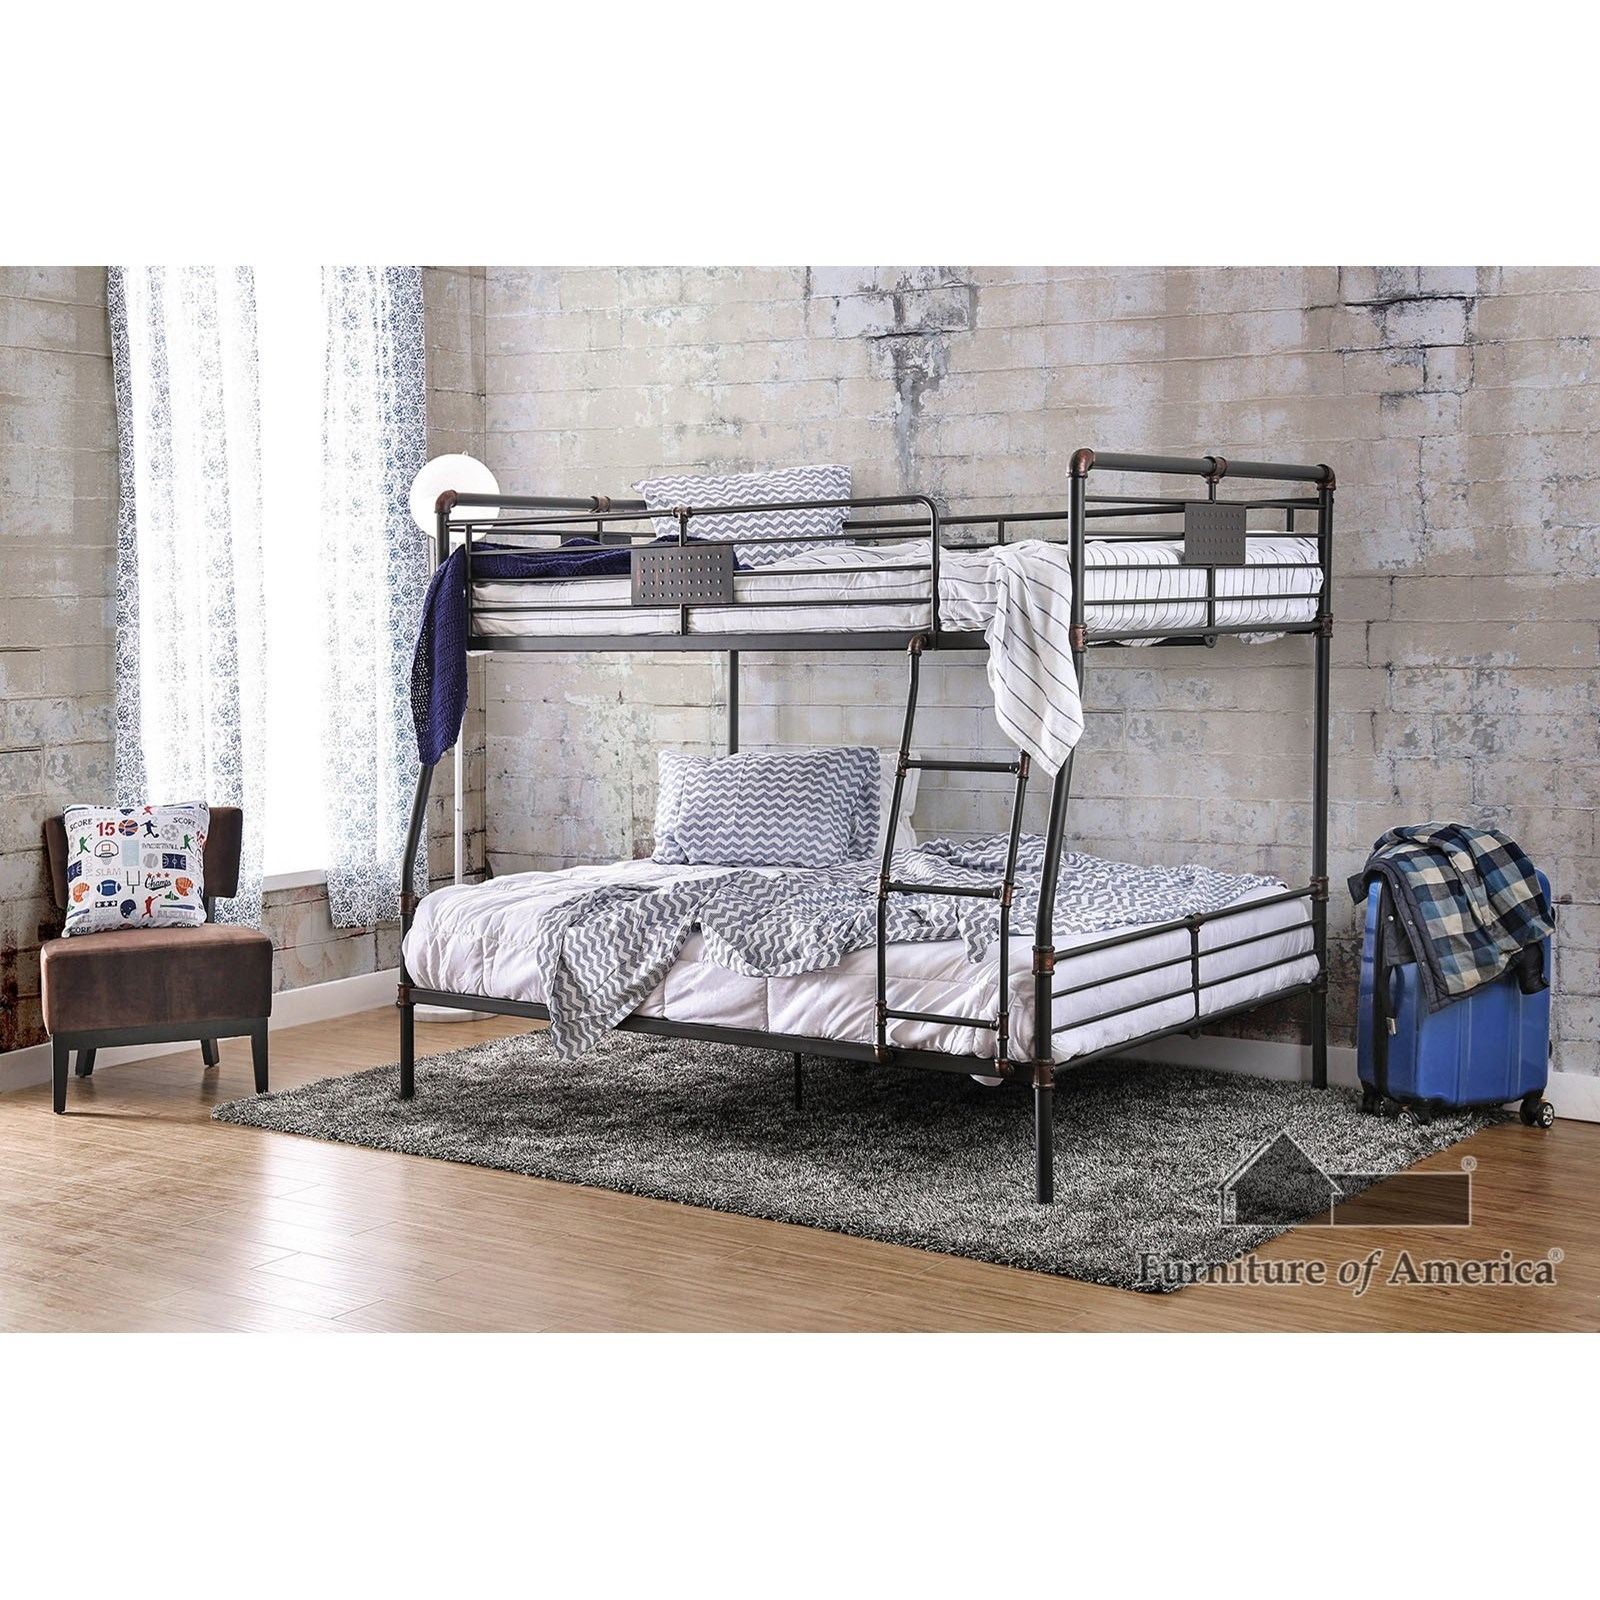 Olga I Full/Queen Bunk Bed at Household Furniture